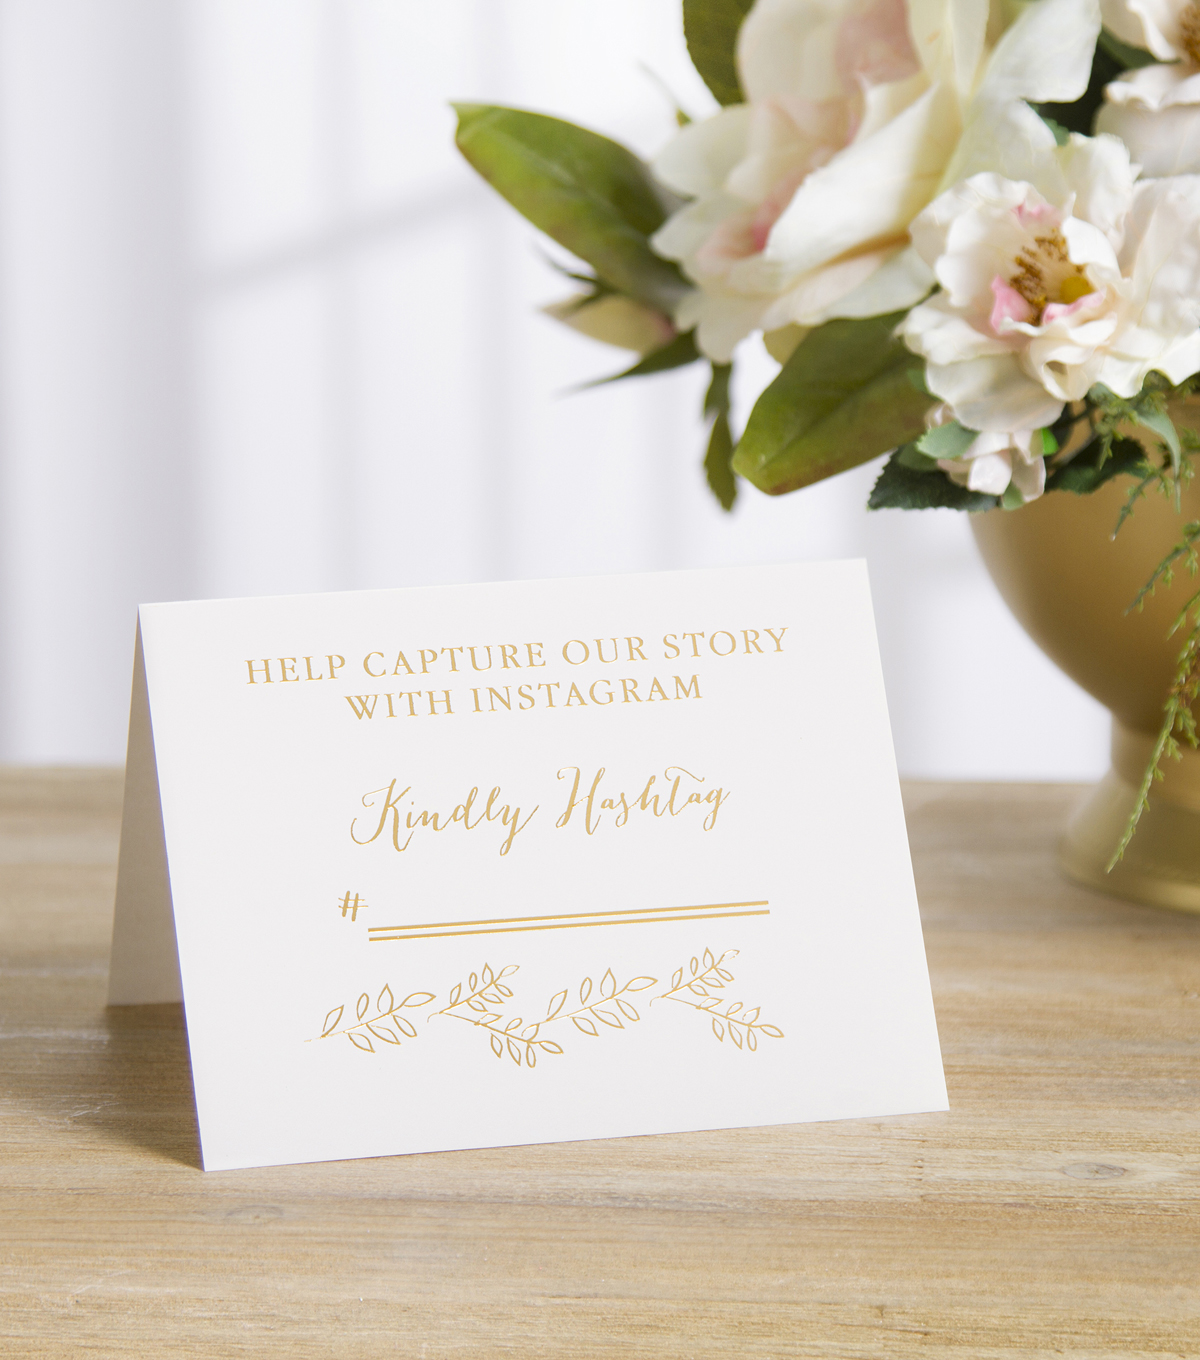 Save The Date Instagram Wedding Sign-Gold Kindly Hashtag